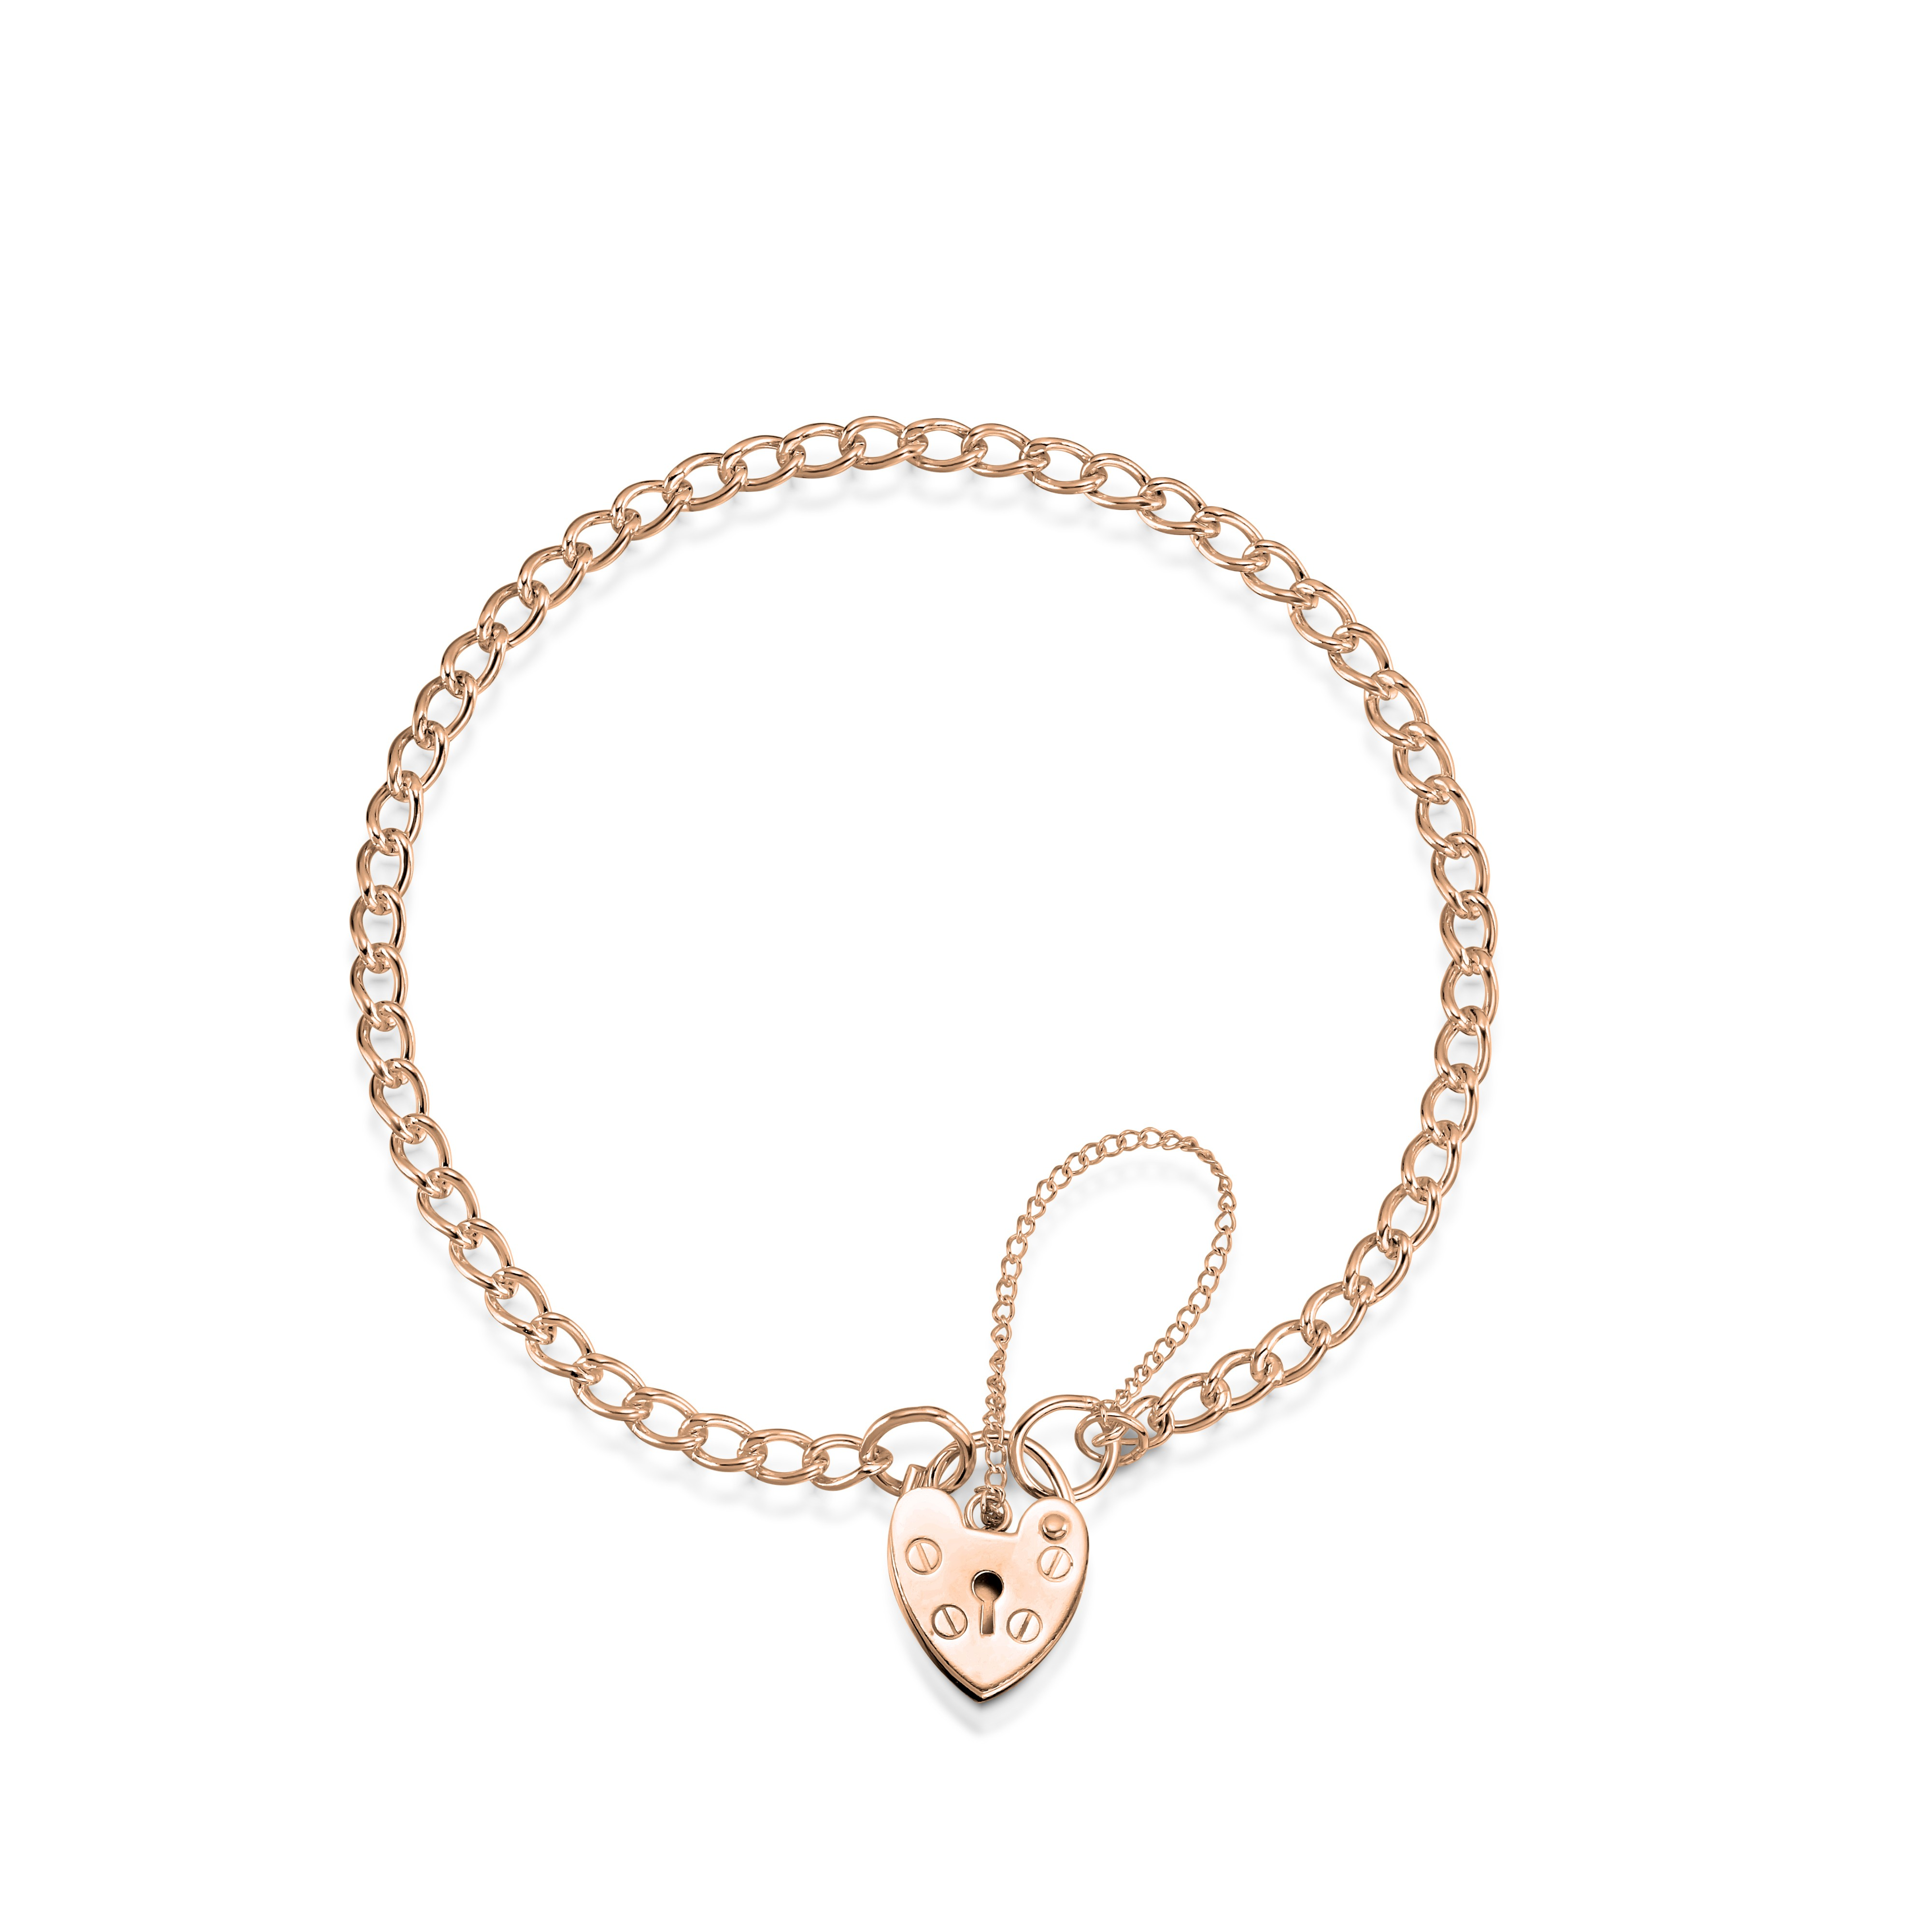 rose gold charm bracelet 9ct rose gold curb charm bracelet with heart shape padlock vundpmt